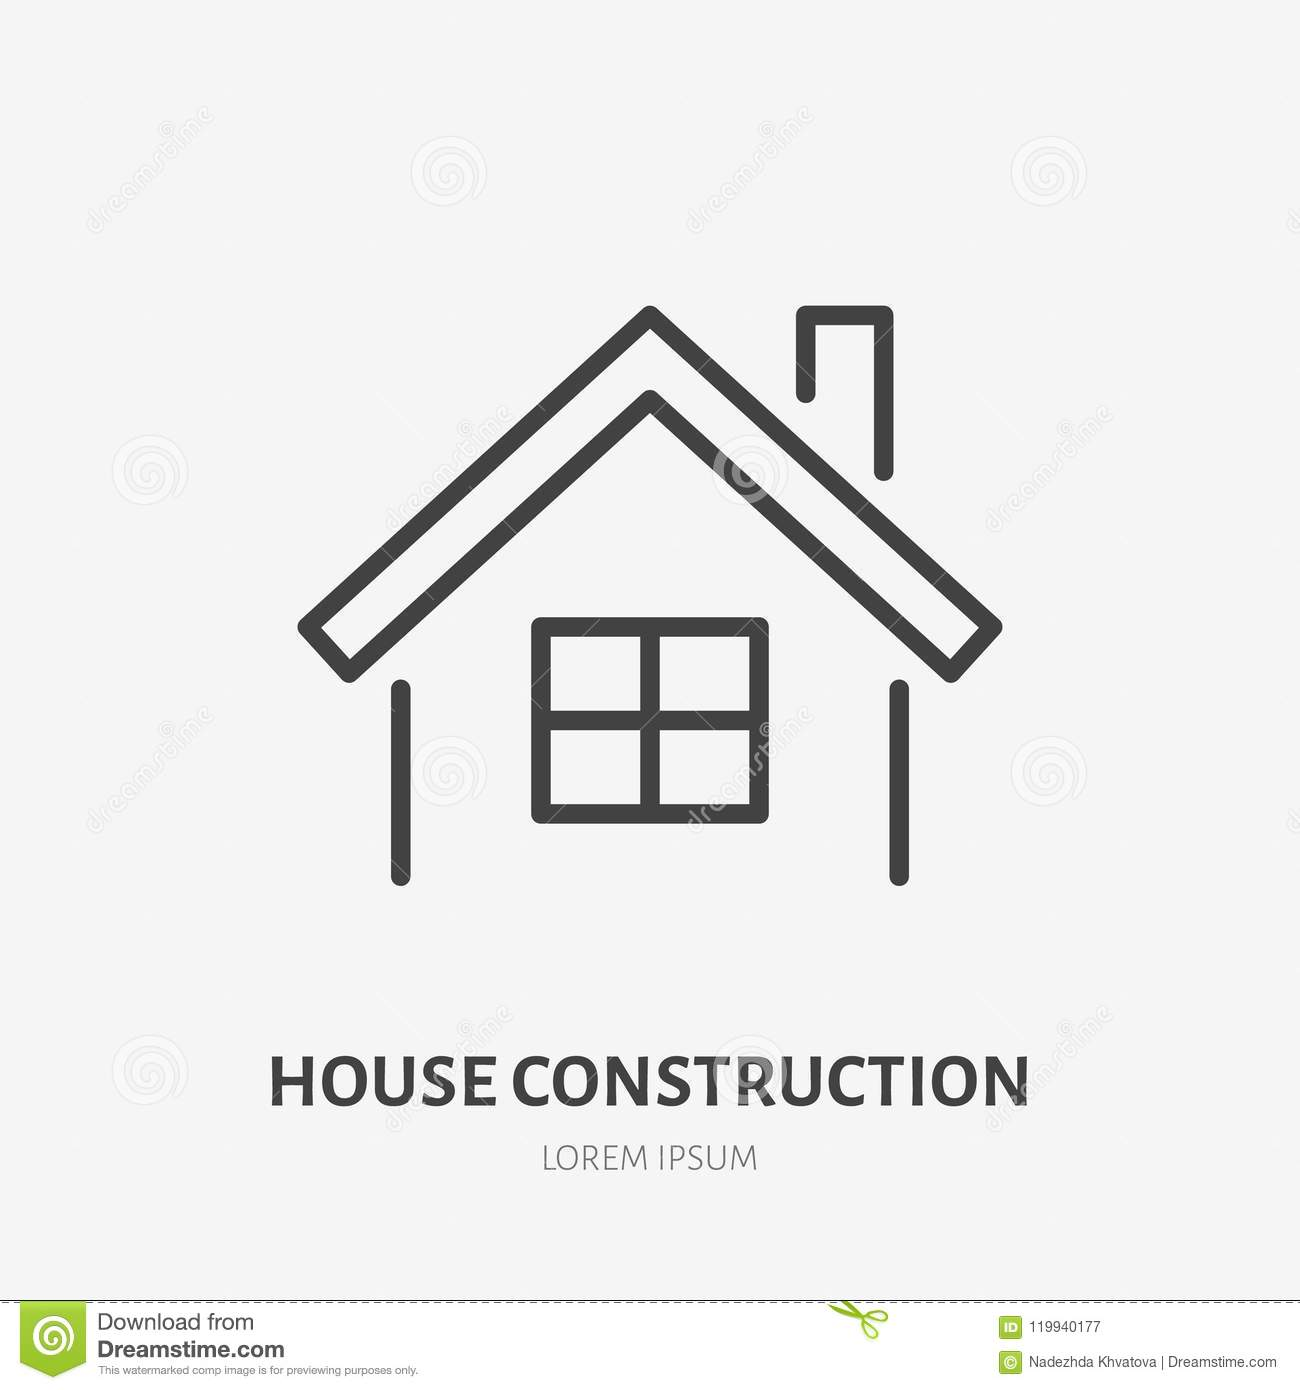 Country house flat line icon. Real estate sign. Thin linear logo for home repair, construction services